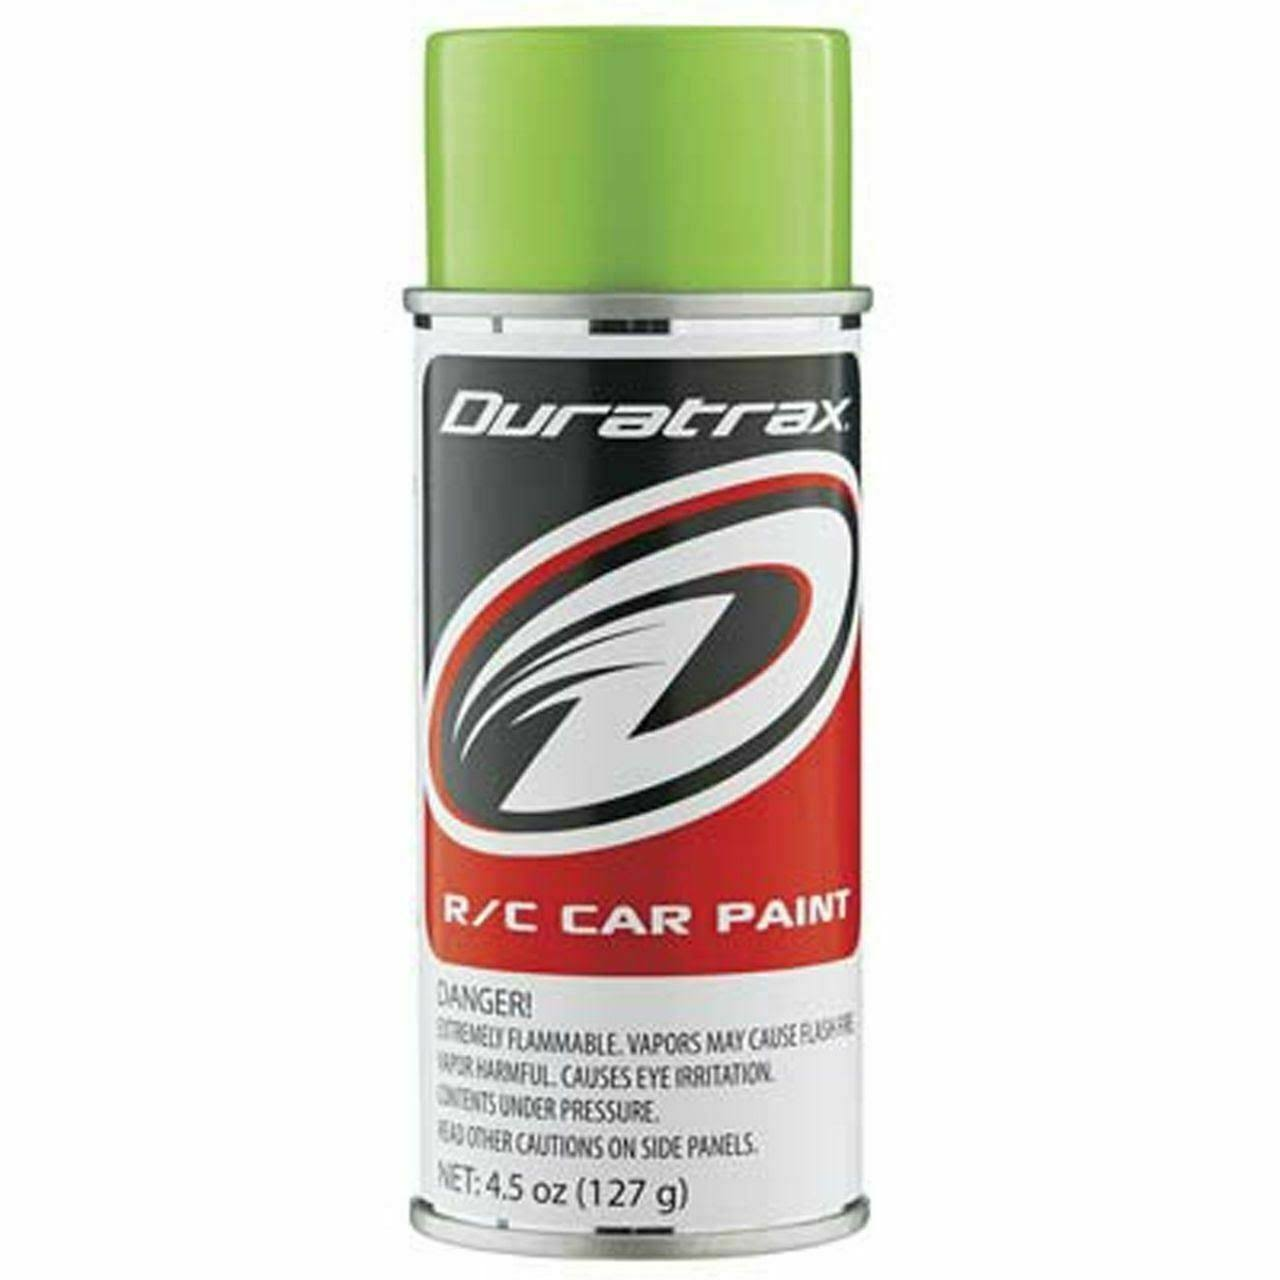 Duratrax Polycarbonate Radio Control Vehicle Body Spray Paint - 4.5oz, Lime Pearl